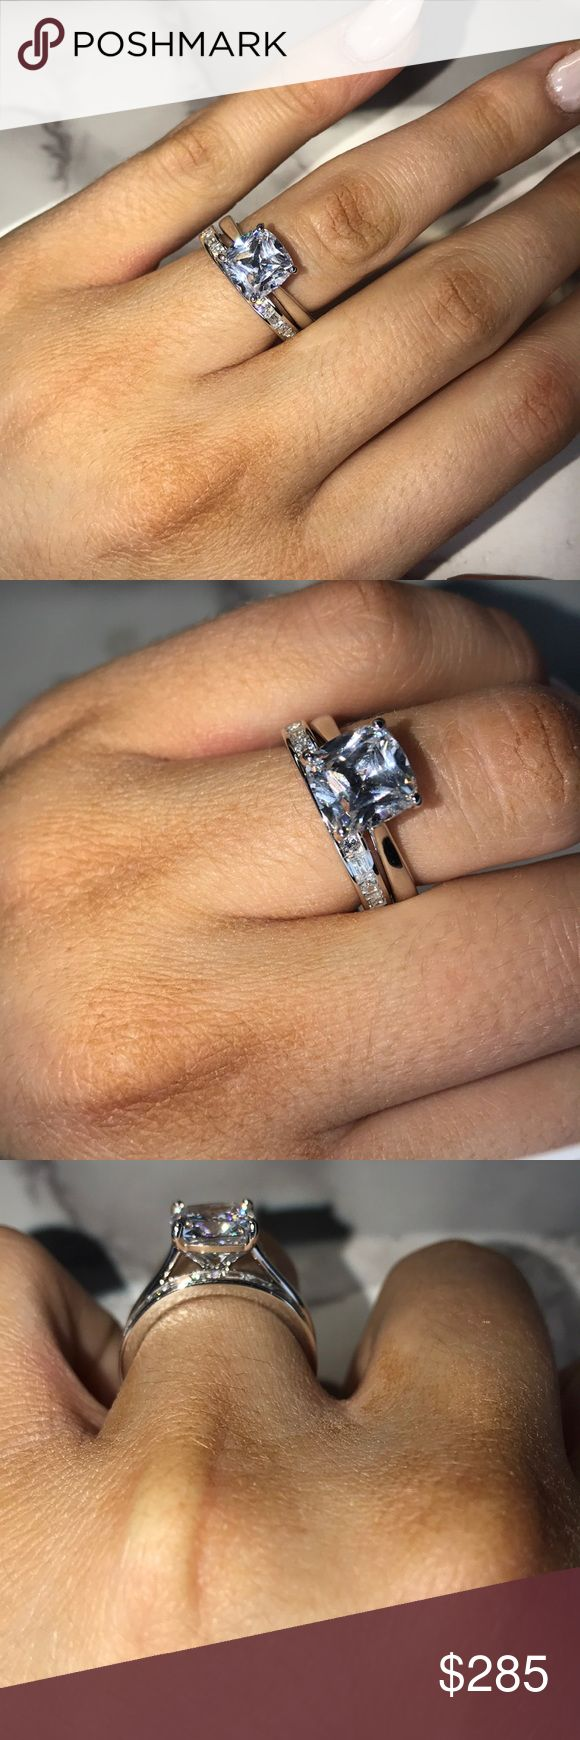 Cushion cut platinum plated wedding set Simulated diamond cushion cut 3 carat center stone weight. Platinum plated over sterling silver! Size 6.75. Band is alternating rounds and baguettes! Beautiful for a travel wedding set or just for fun! Jewelry Rings